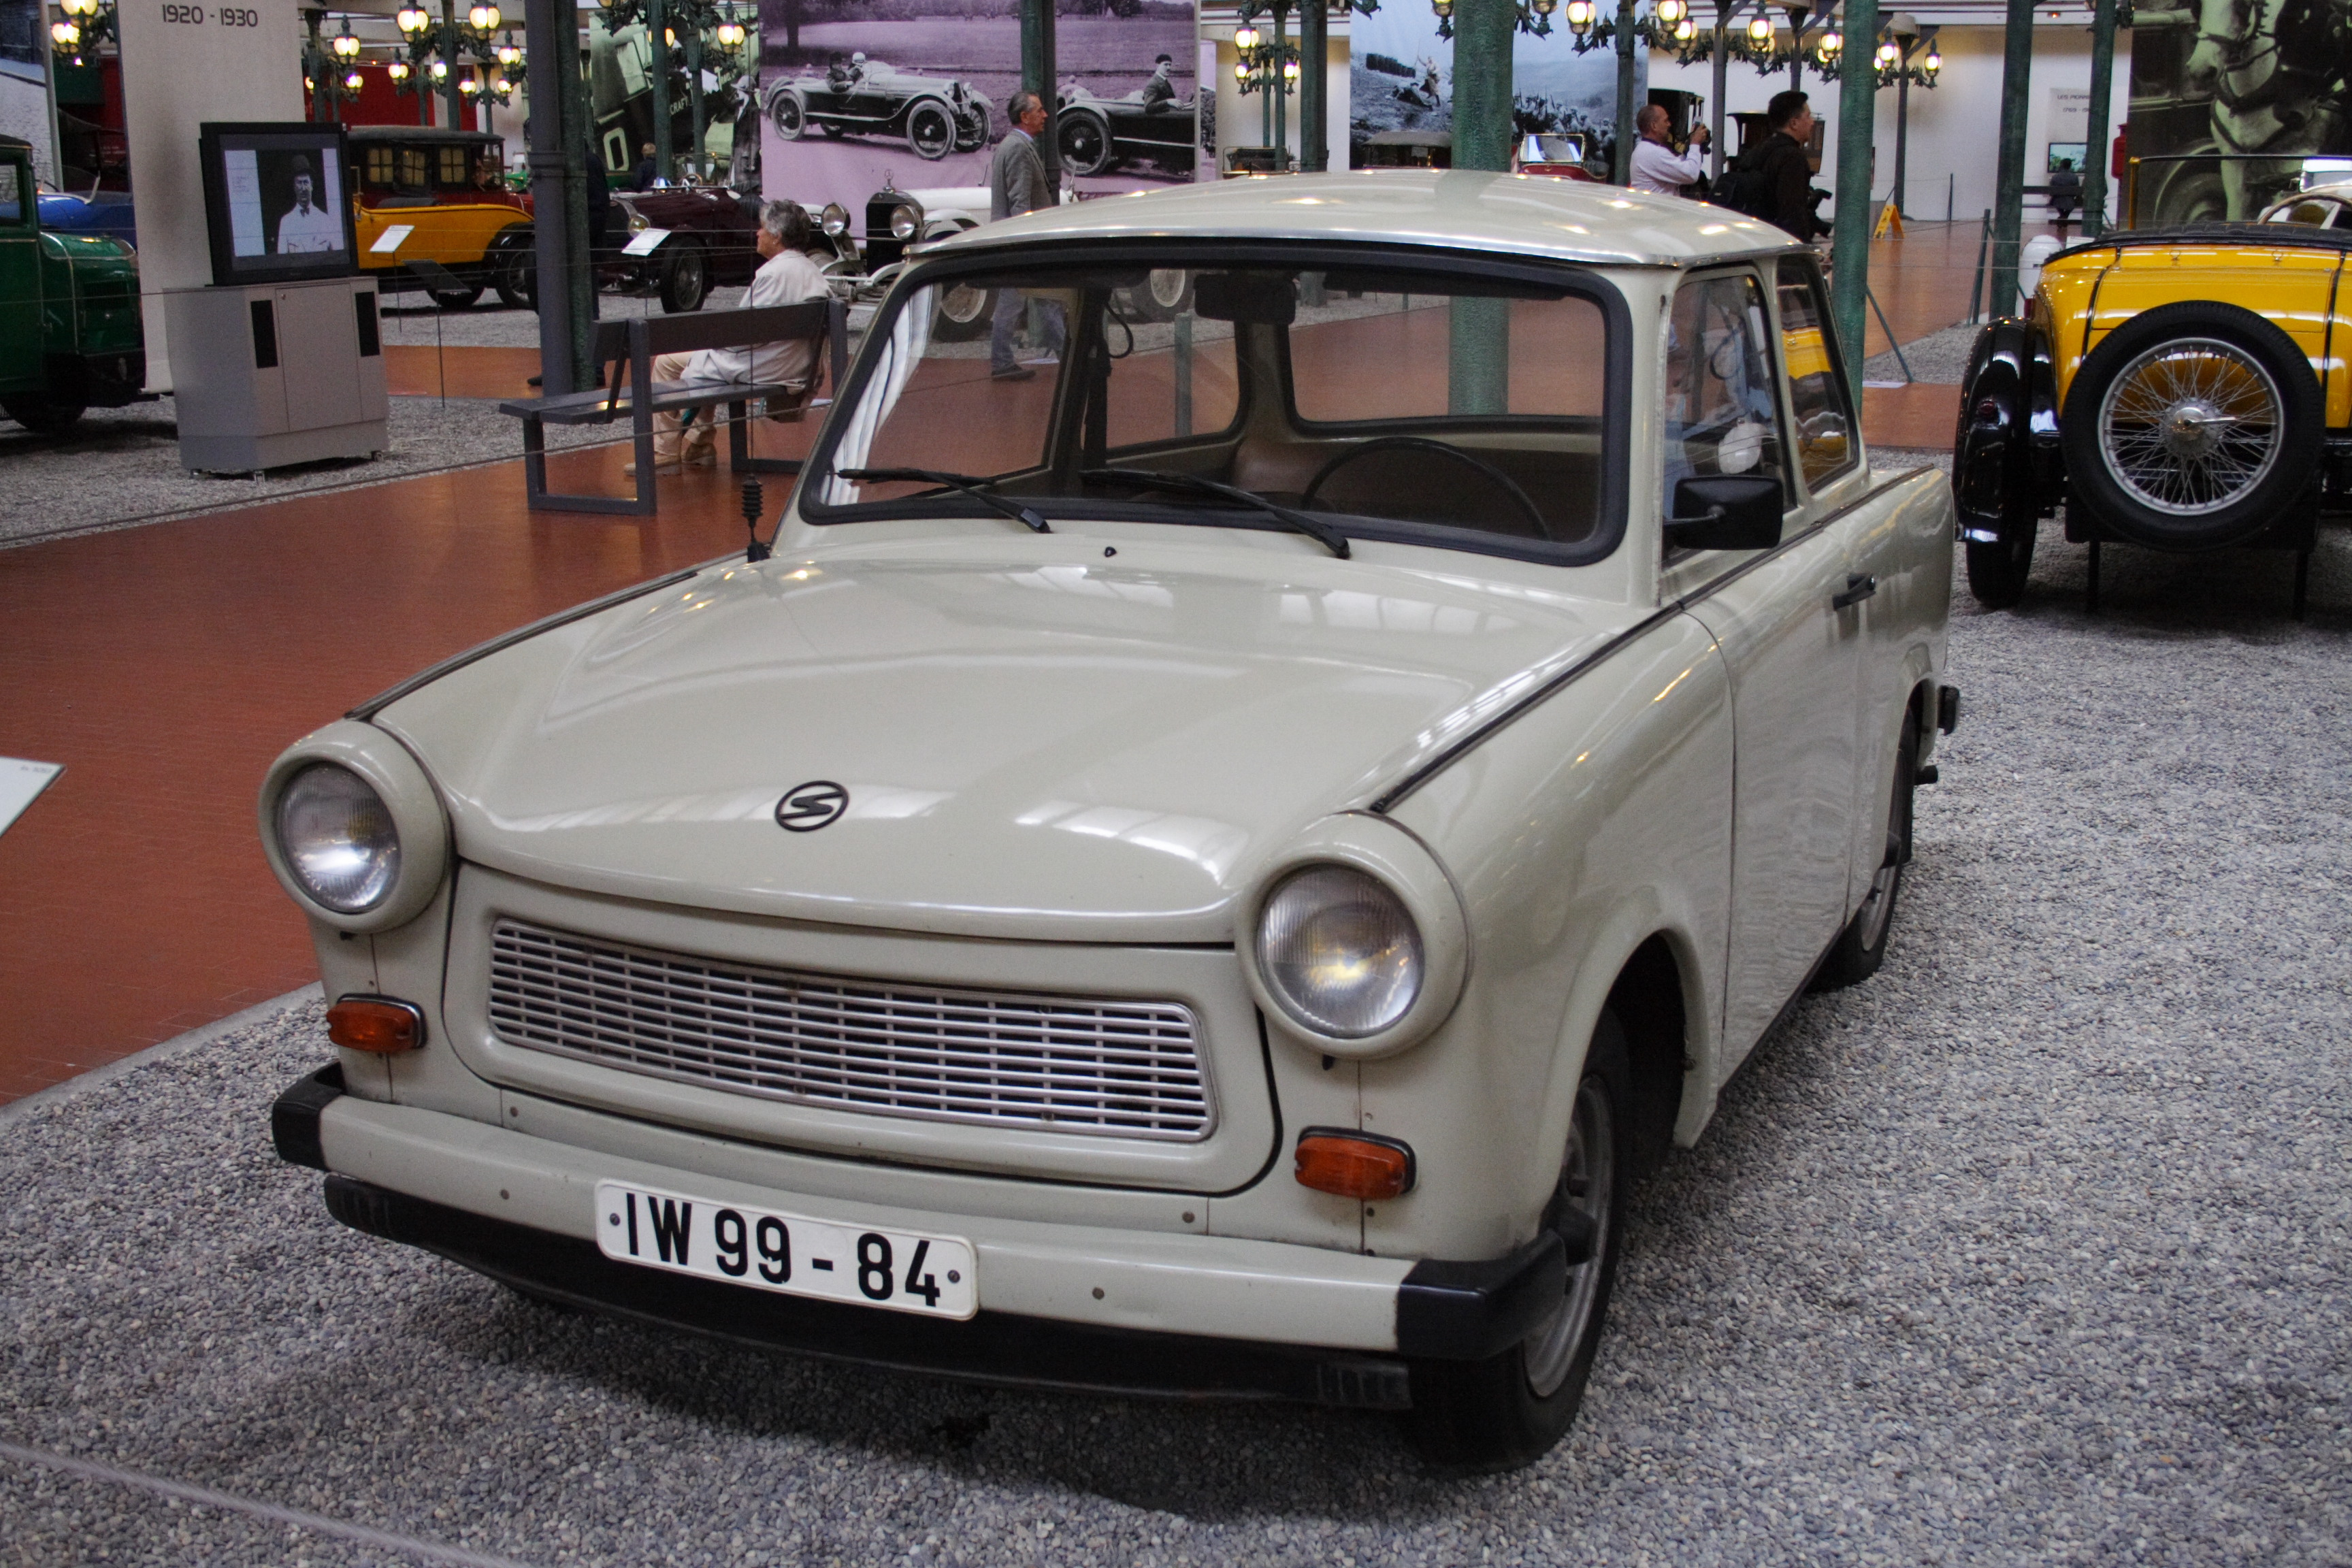 Trabant 601 Backgrounds, Compatible - PC, Mobile, Gadgets| 3456x2304 px